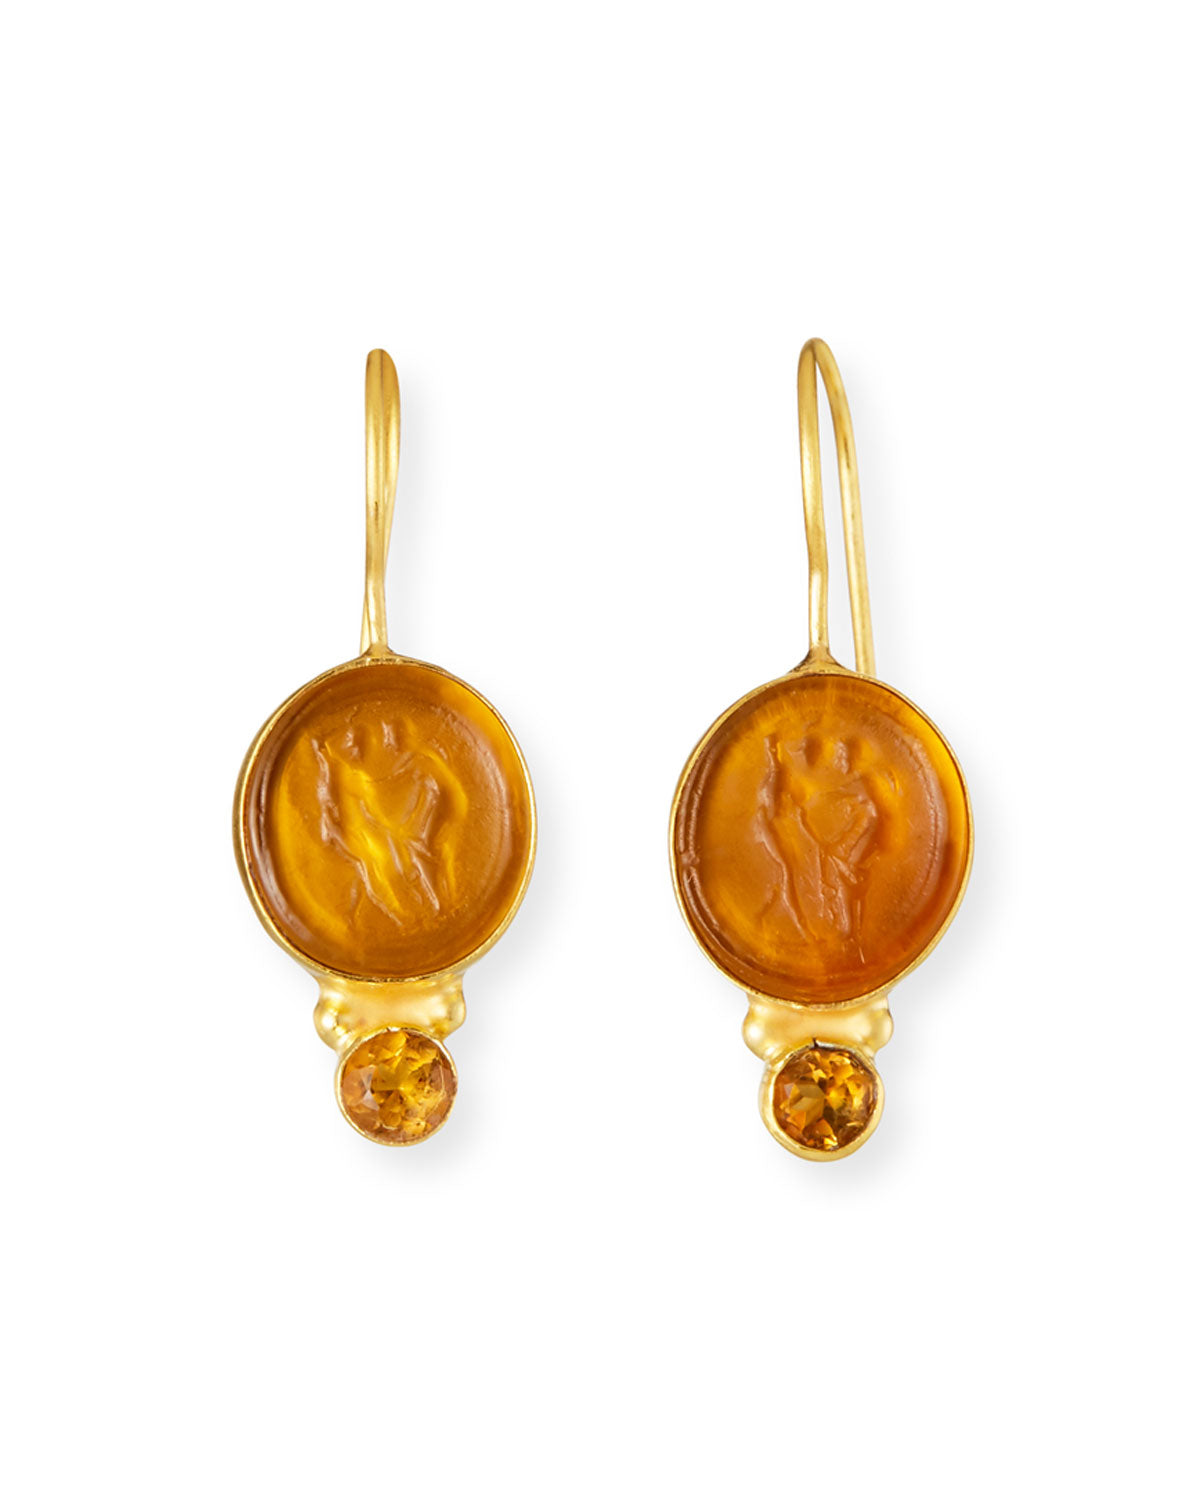 Italian Glass and Mandarin Garnet Middie Earrings